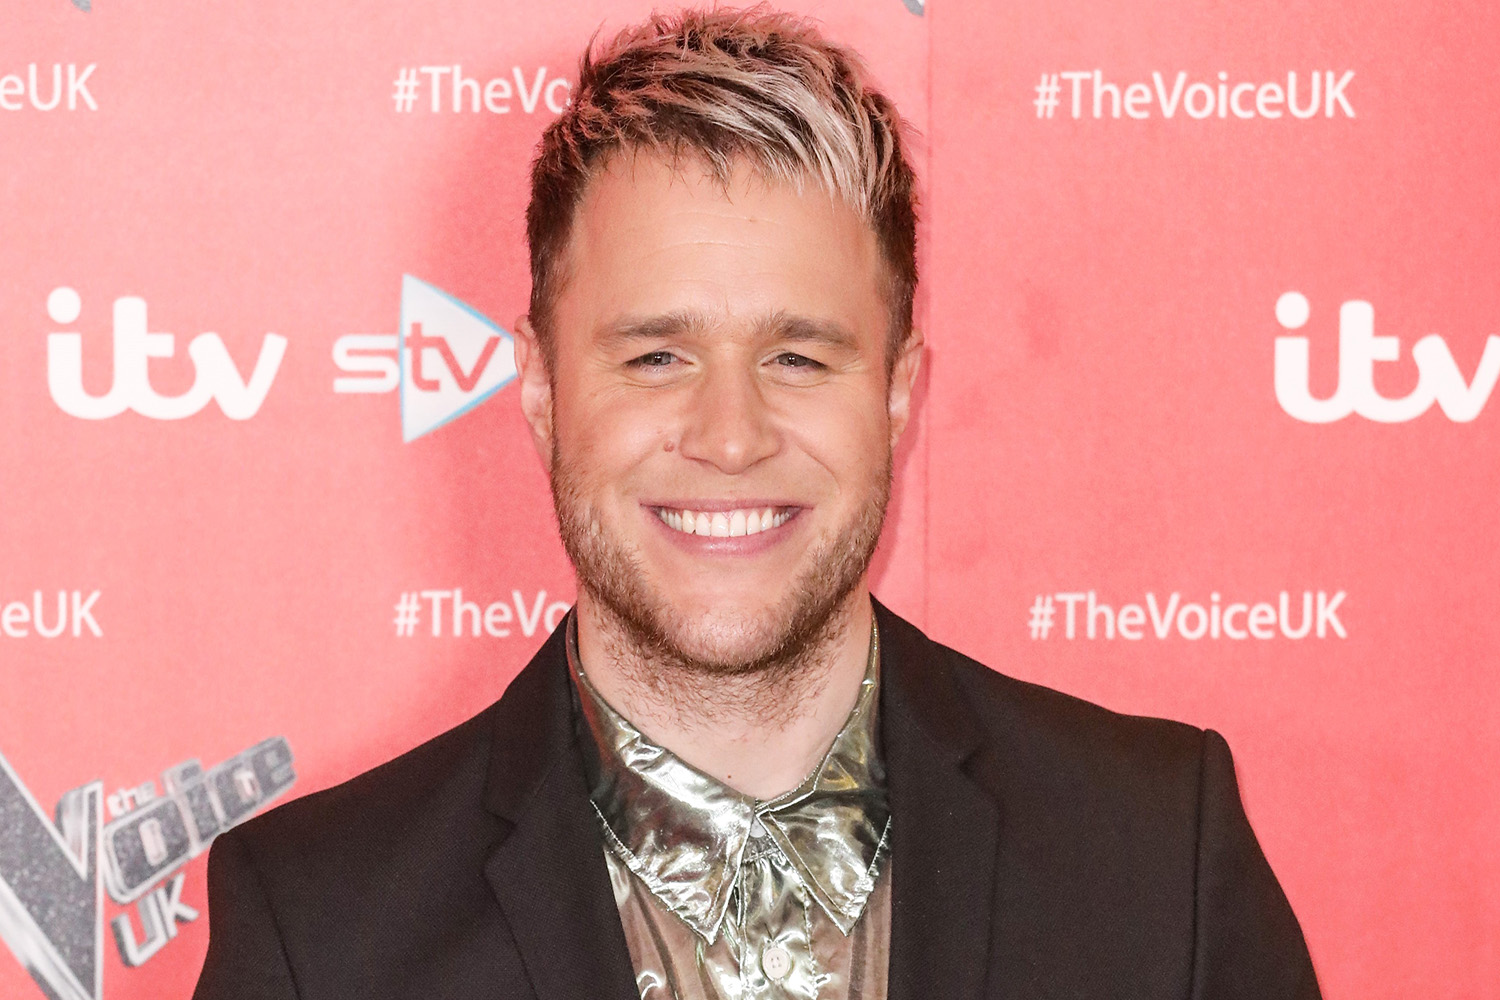 Olly Murs admits he's missing Caroline Flack as he shares throwback video